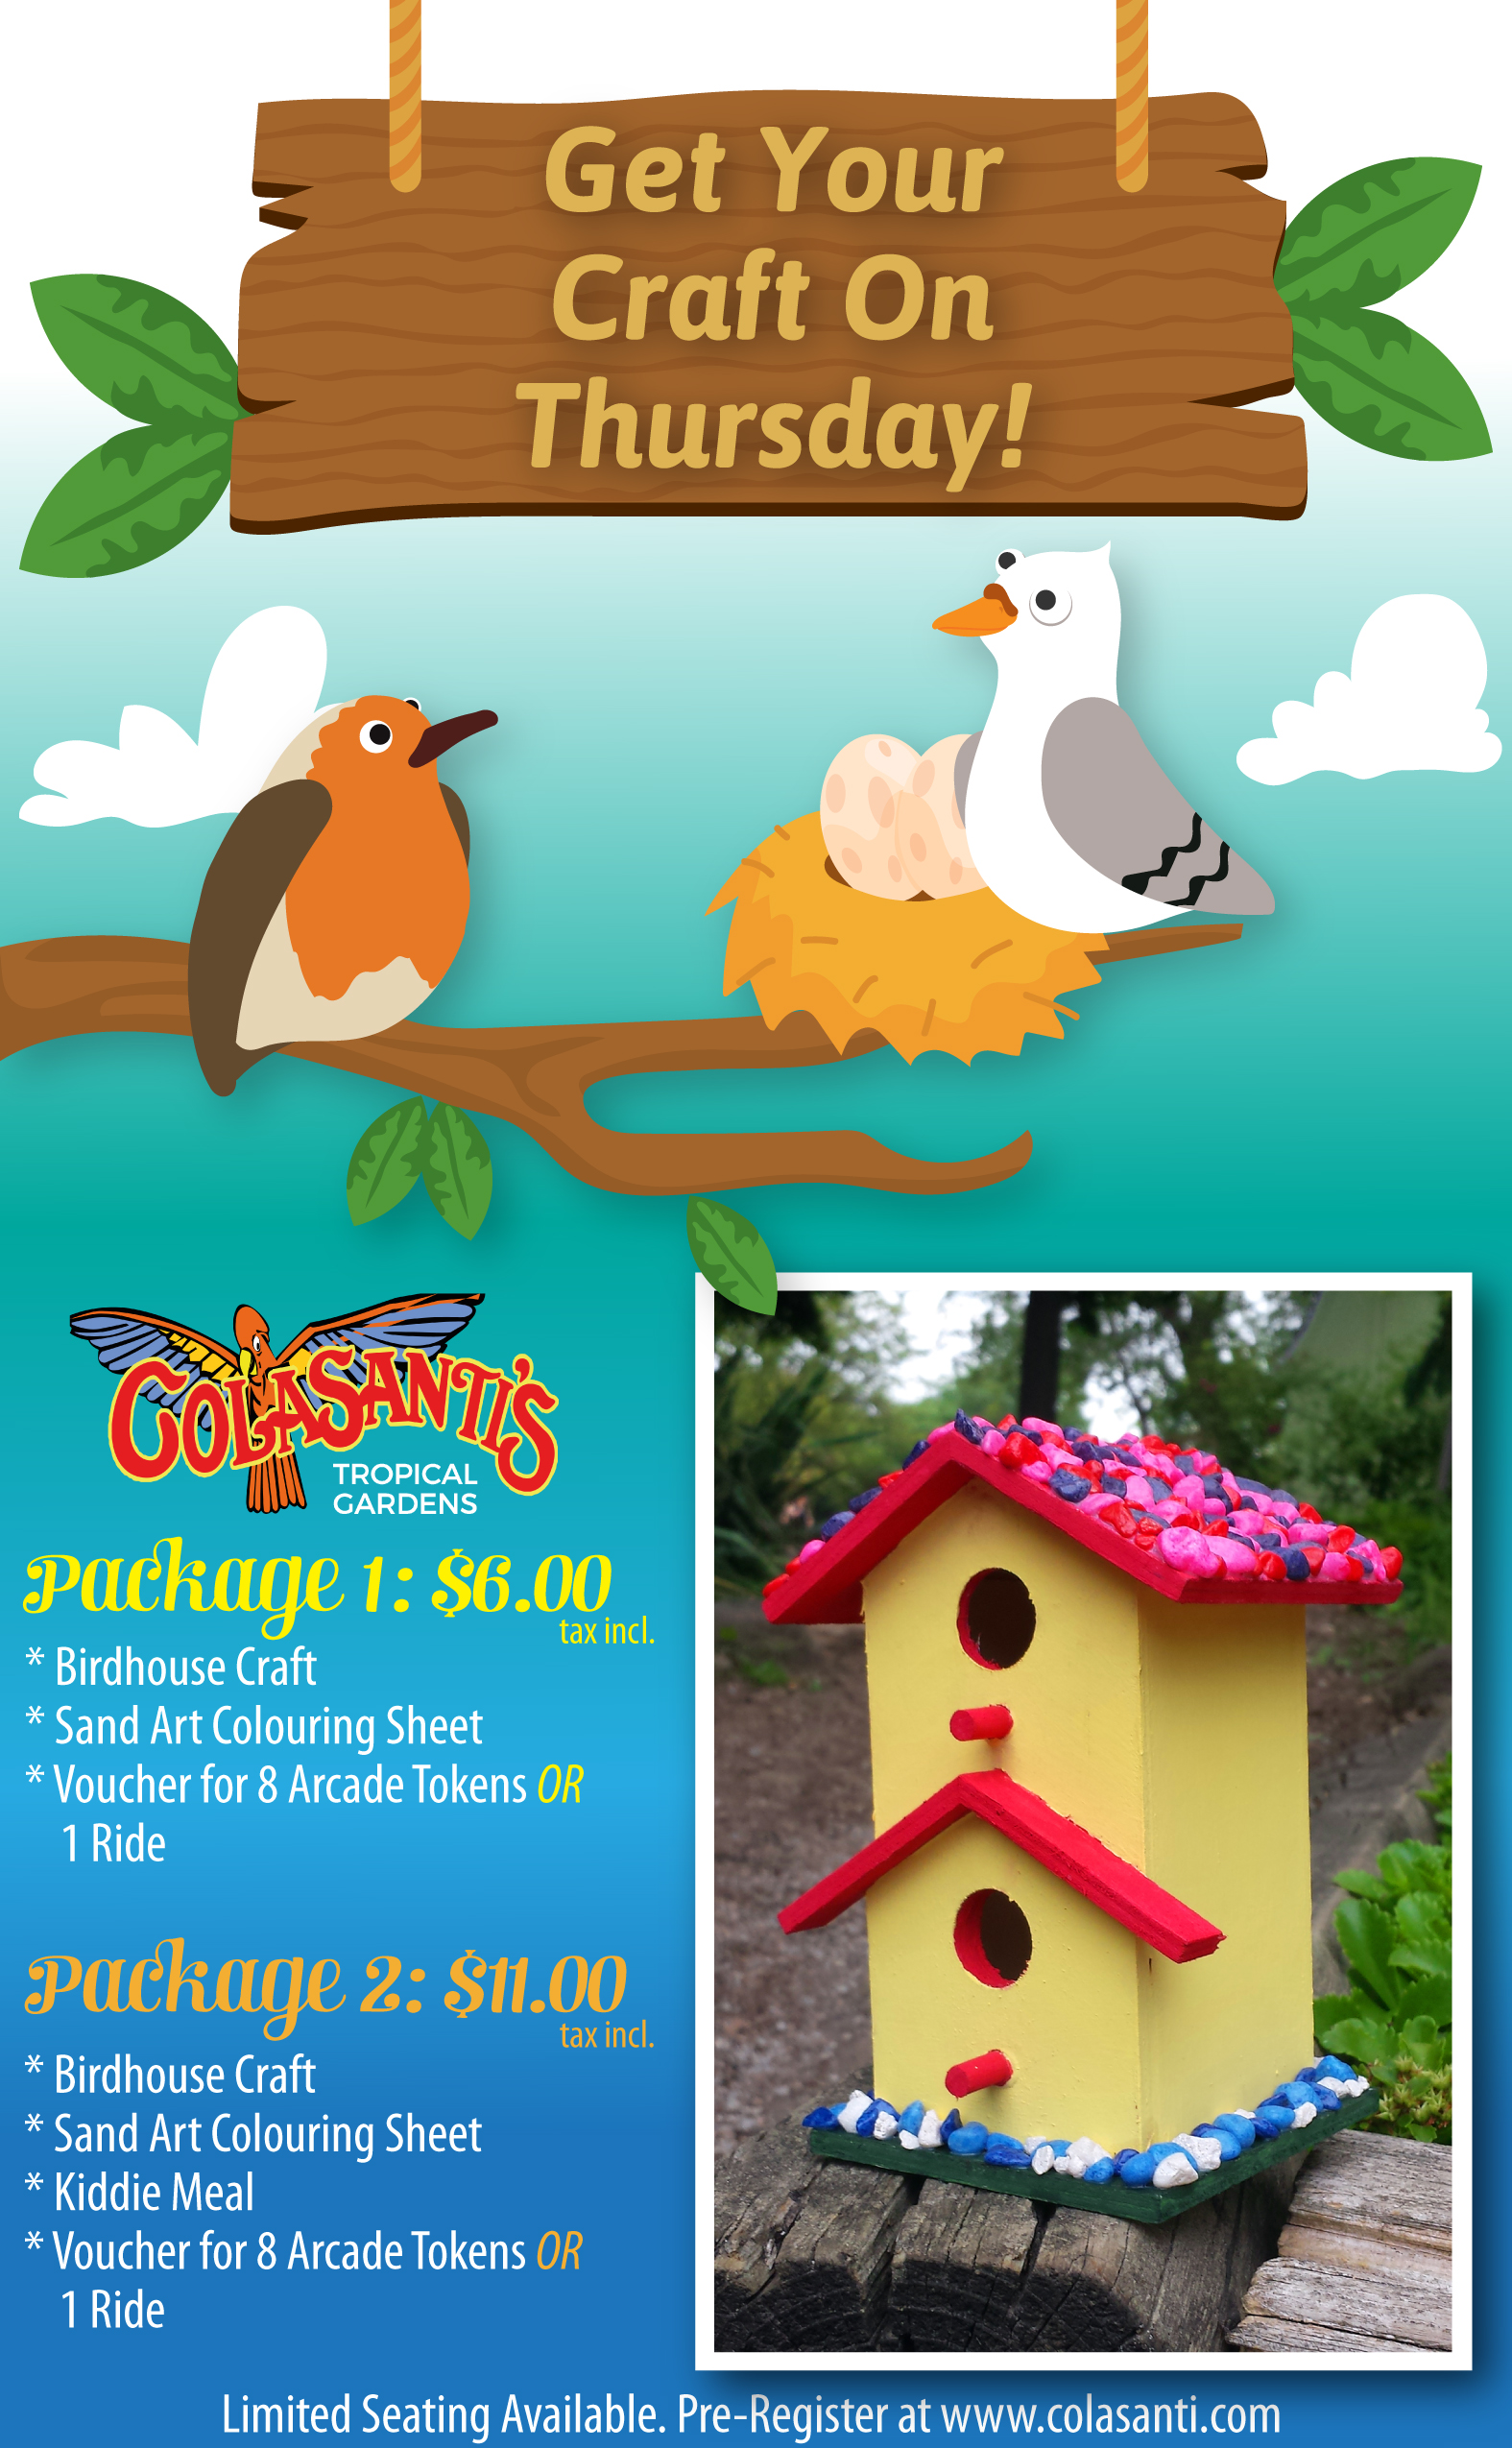 Colasanti's Tropical Gardens Get Your Craft On Thursdays